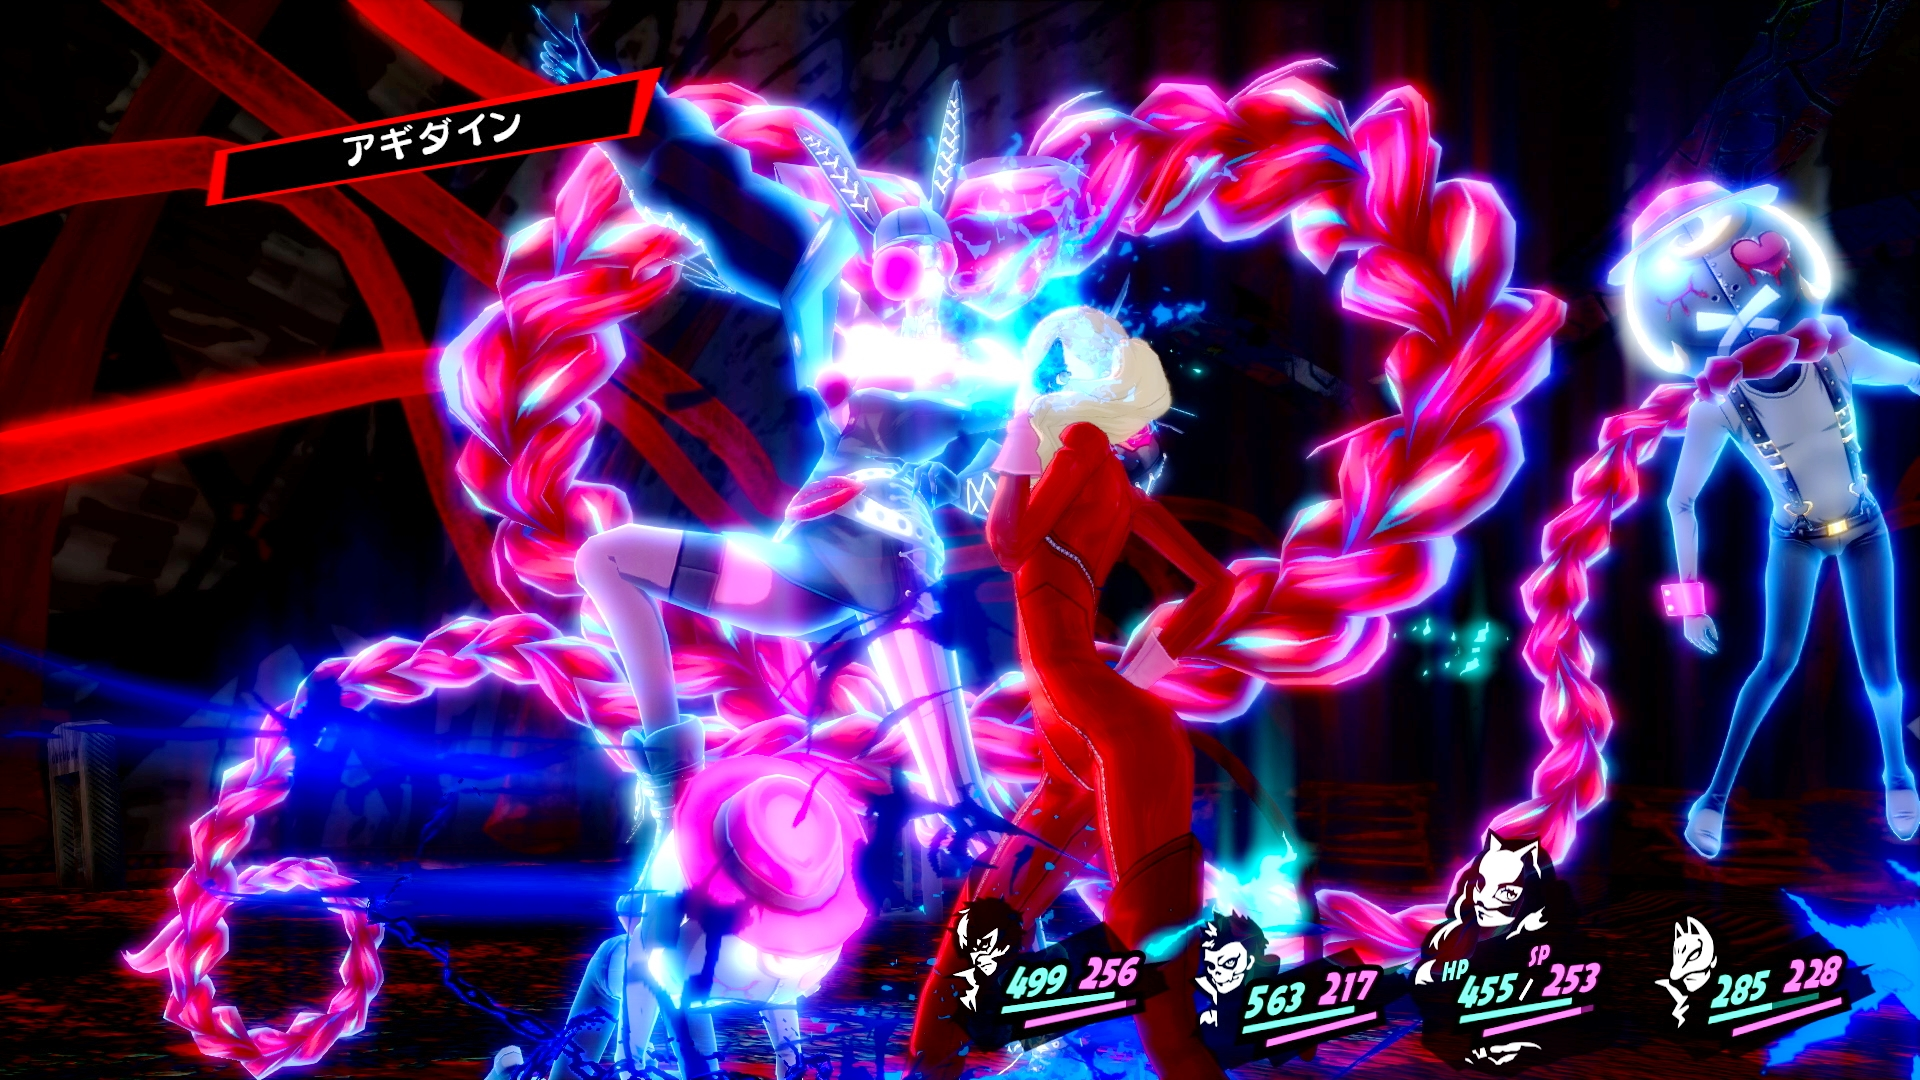 Persona 5 Royal Second Gameplay Trailer Released Showing Off New